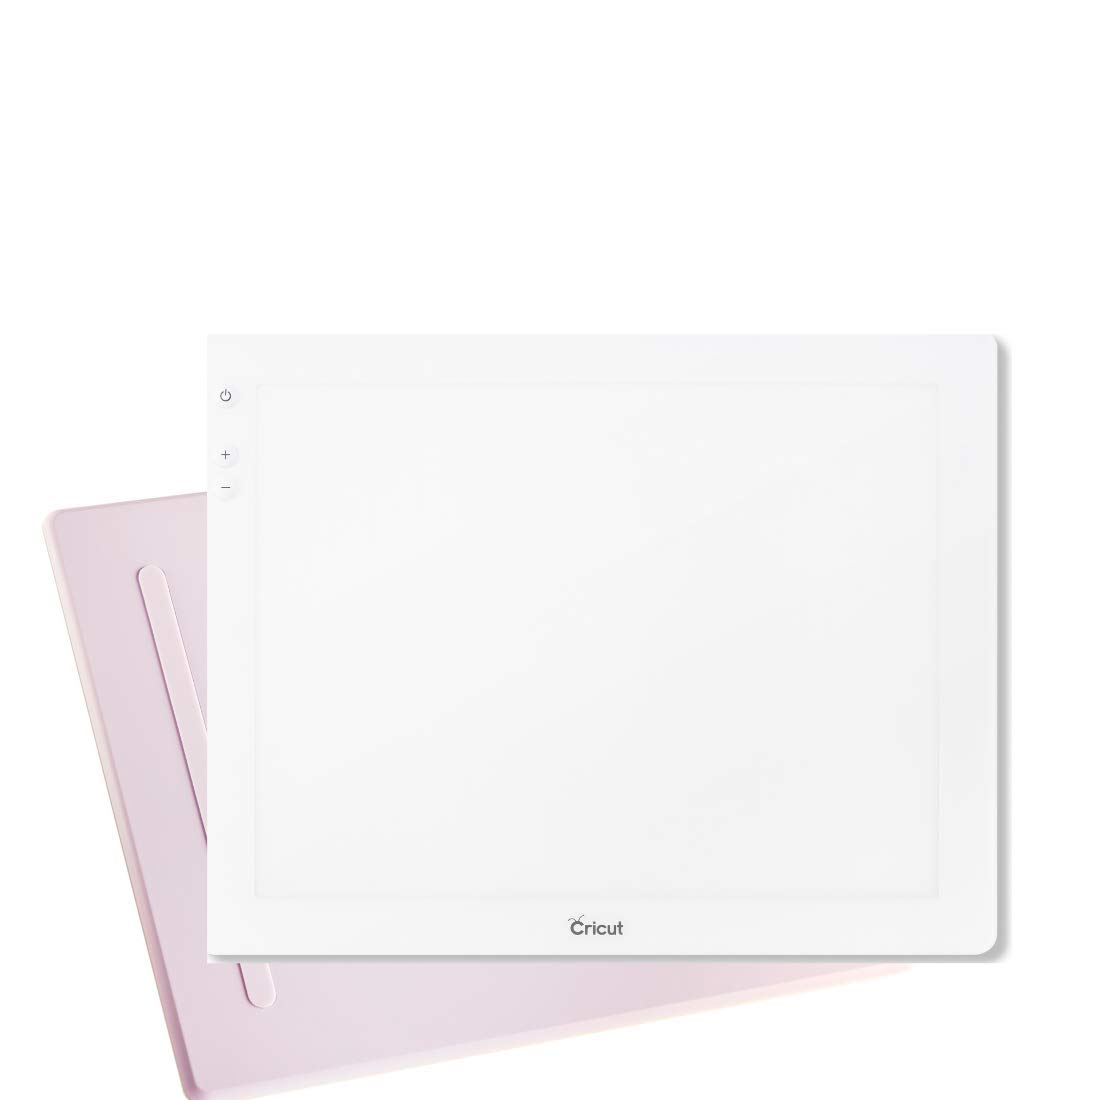 Cricut Bright Pad - Rose by Cricut (Image #1)